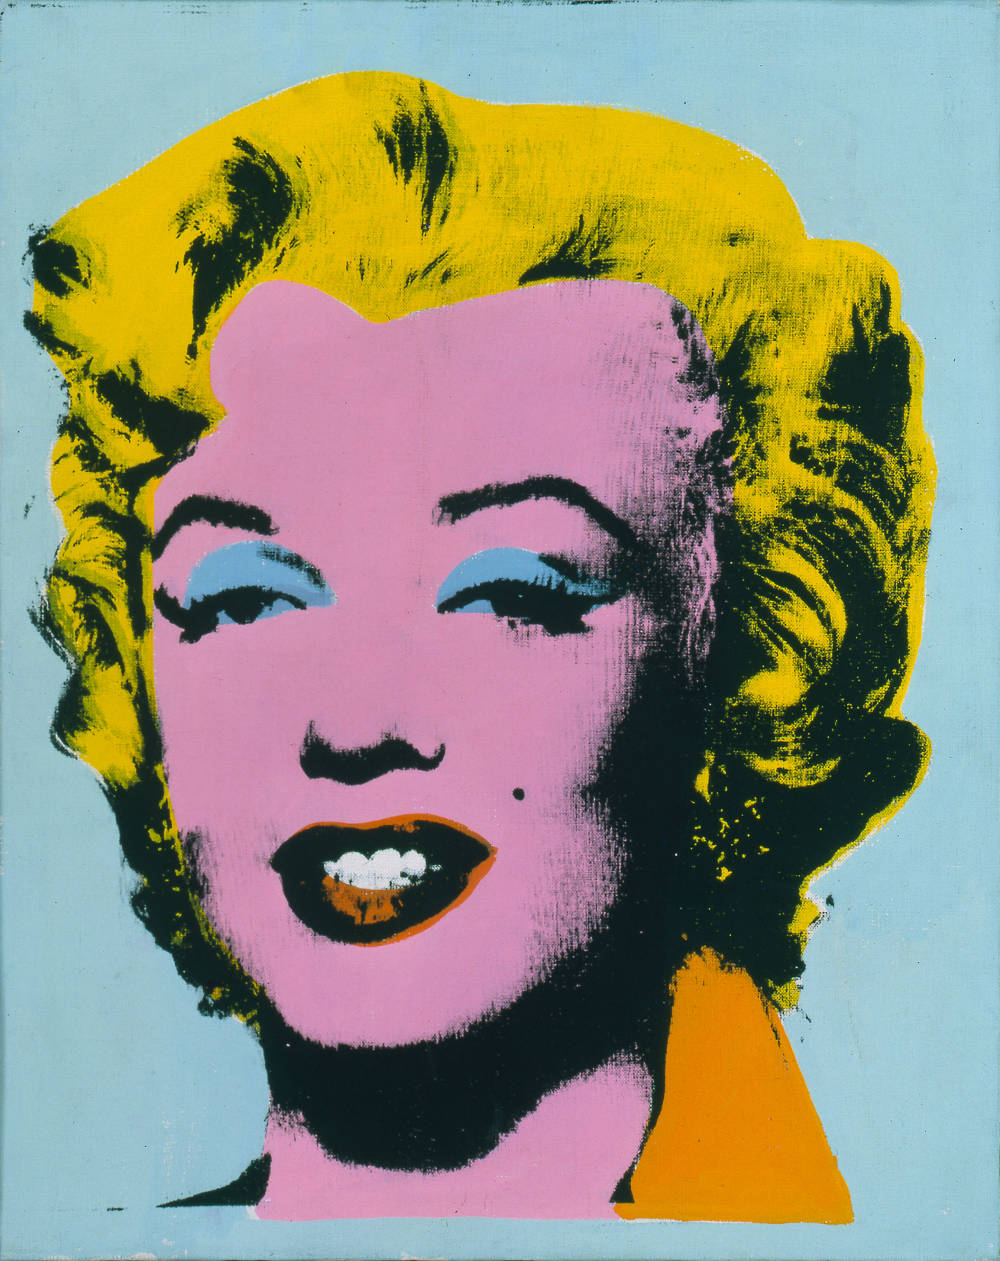 Andy Warhol, Mint Marilyn (Turquoise Marilyn), 1962. Acrylic and silkscreen ink on linen 20 x 16 inches (50.8 x 40.6 cm) © 2019 The Andy Warhol Foundation for the Visual Arts, Inc. / Licensed by Artists Rights Society (ARS), New York. Private Collection. Photo: Dorothy Zeidman